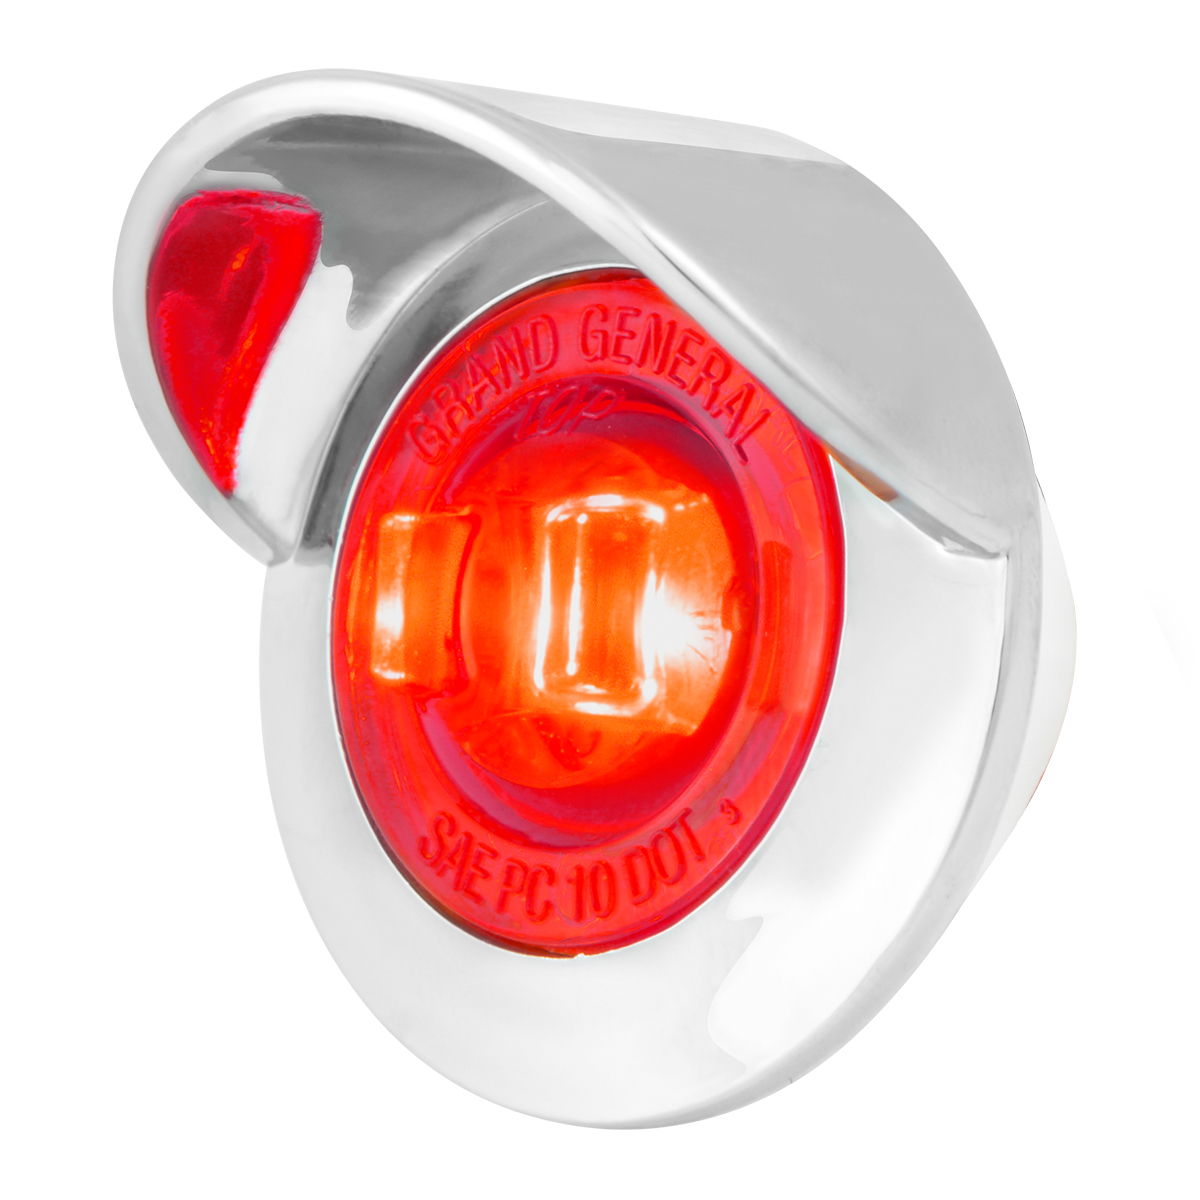 "75252 1"" Dia. Mini Push/Screw-in Wide Angle LED Marker Light w/ Chrome Bezel & Visor"